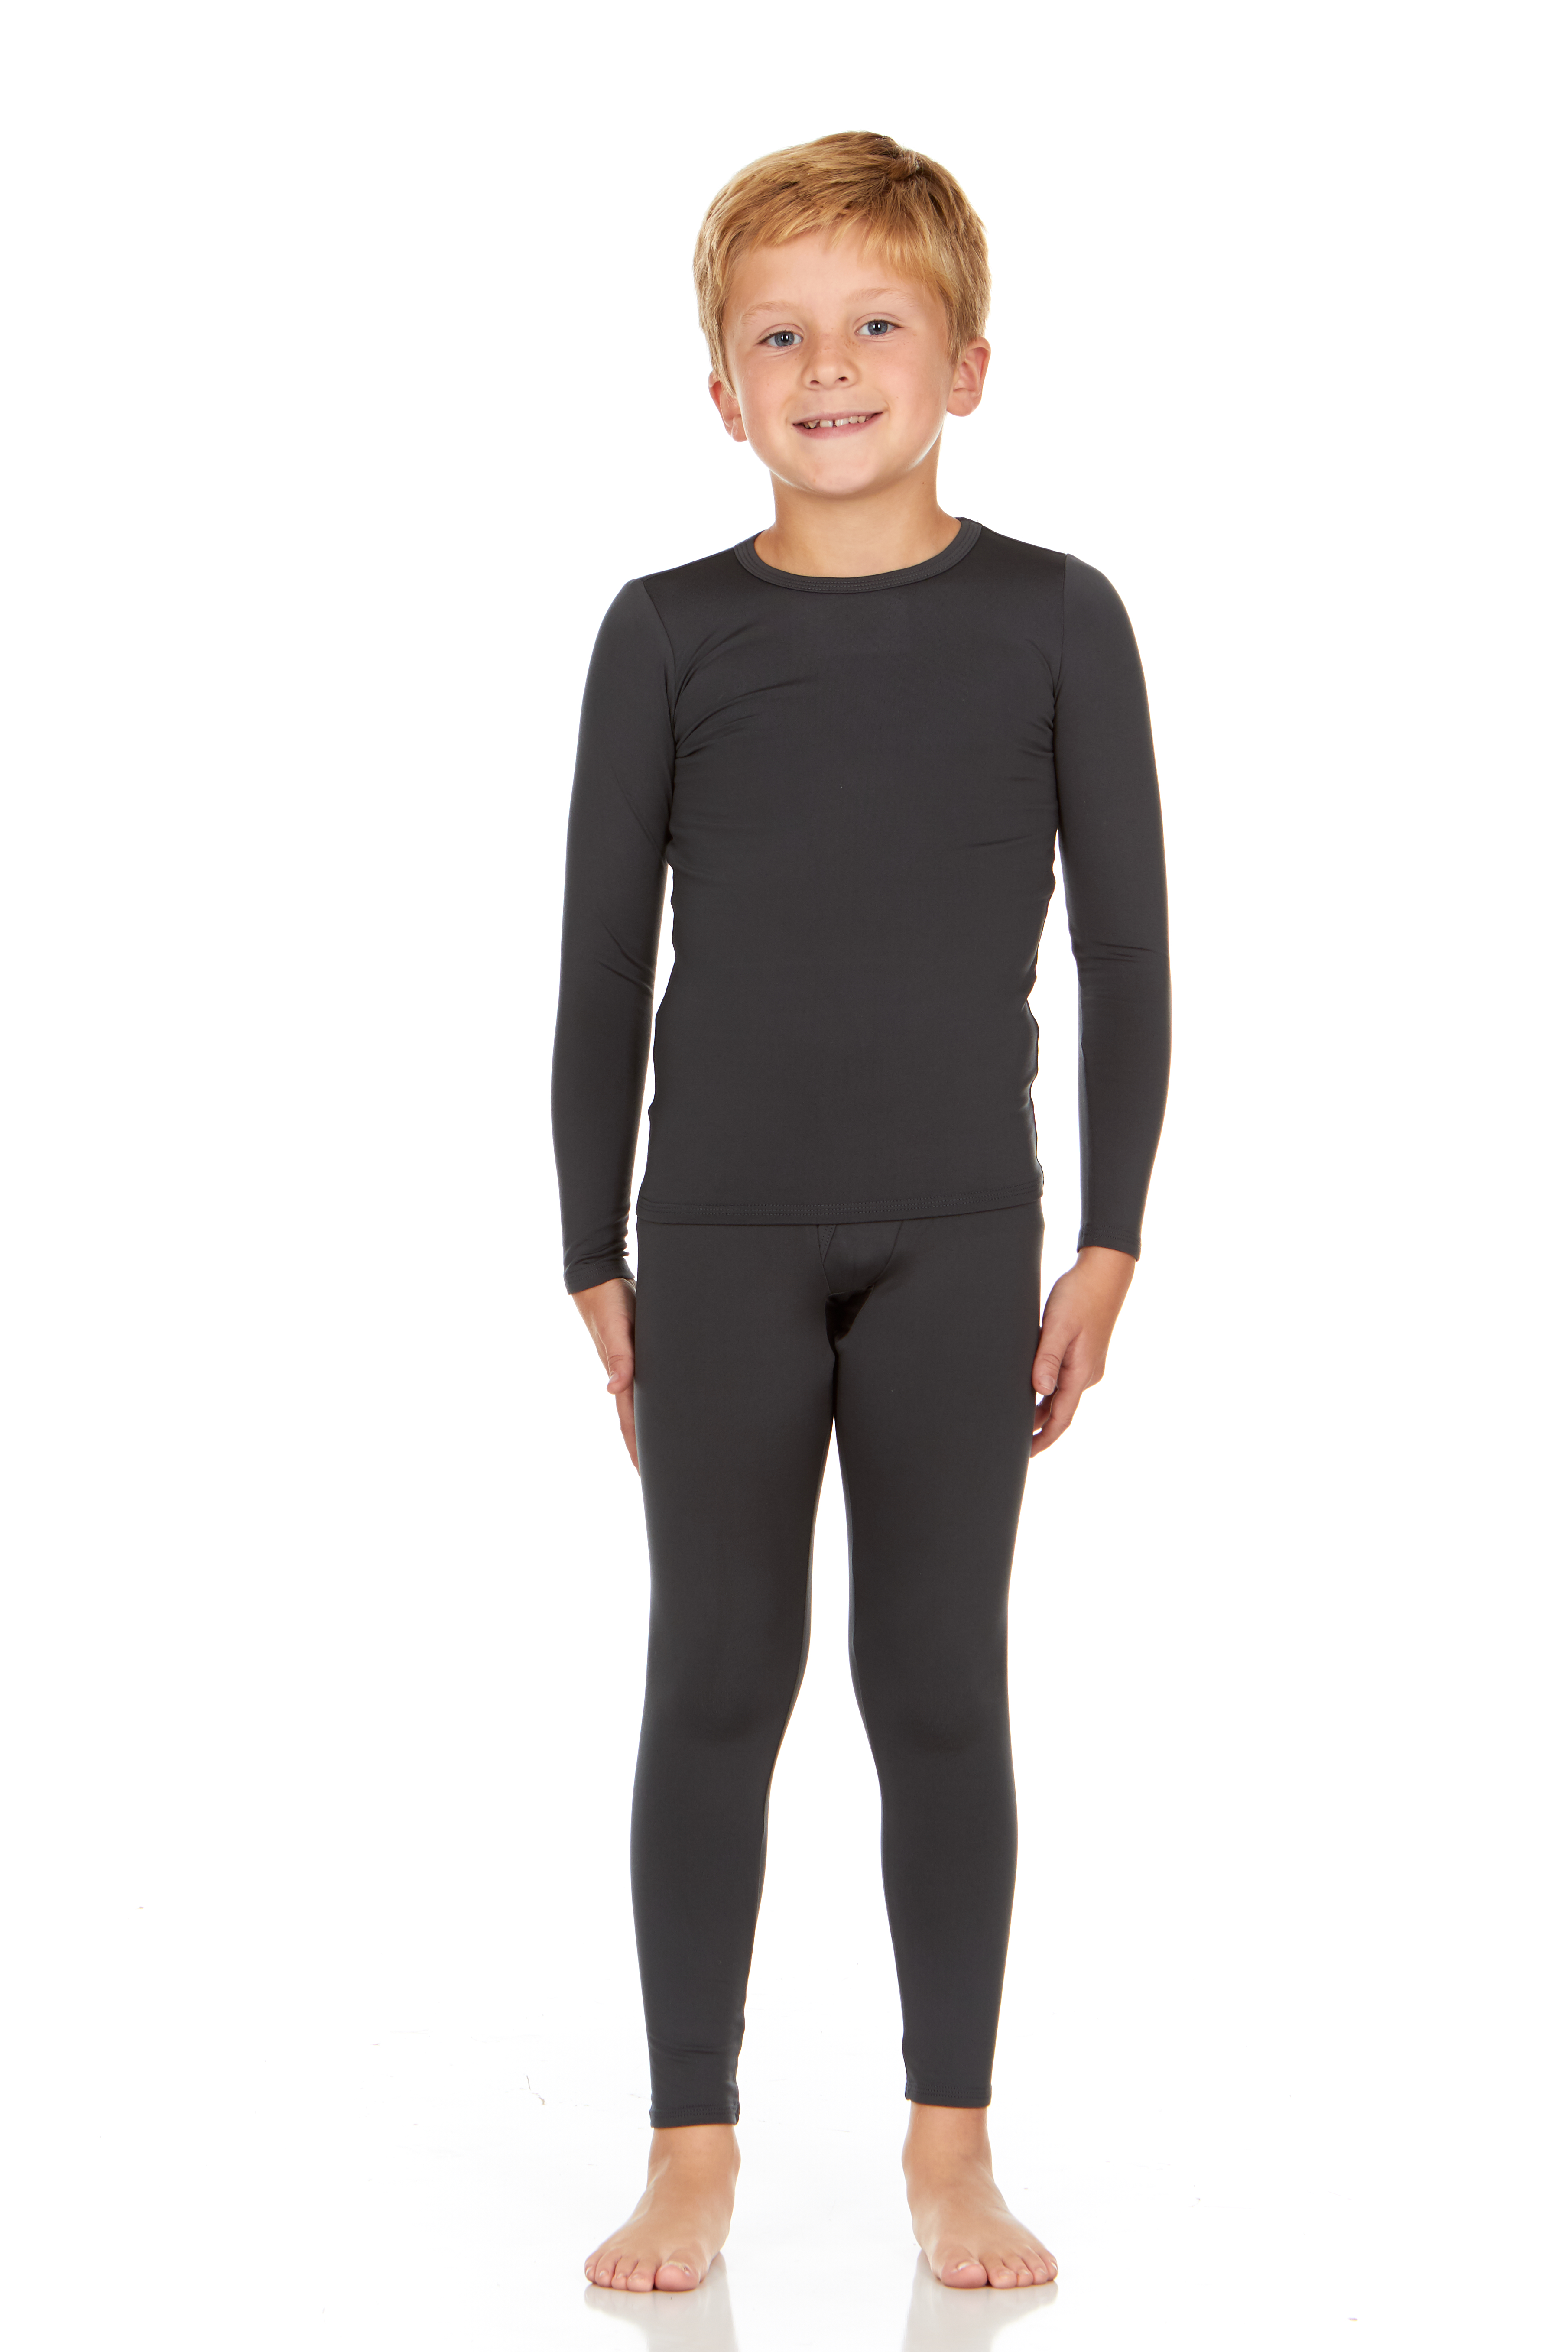 Thermajohn Boys Ultra Soft Thermal Underwear Long Johns Set with Fleece Lined